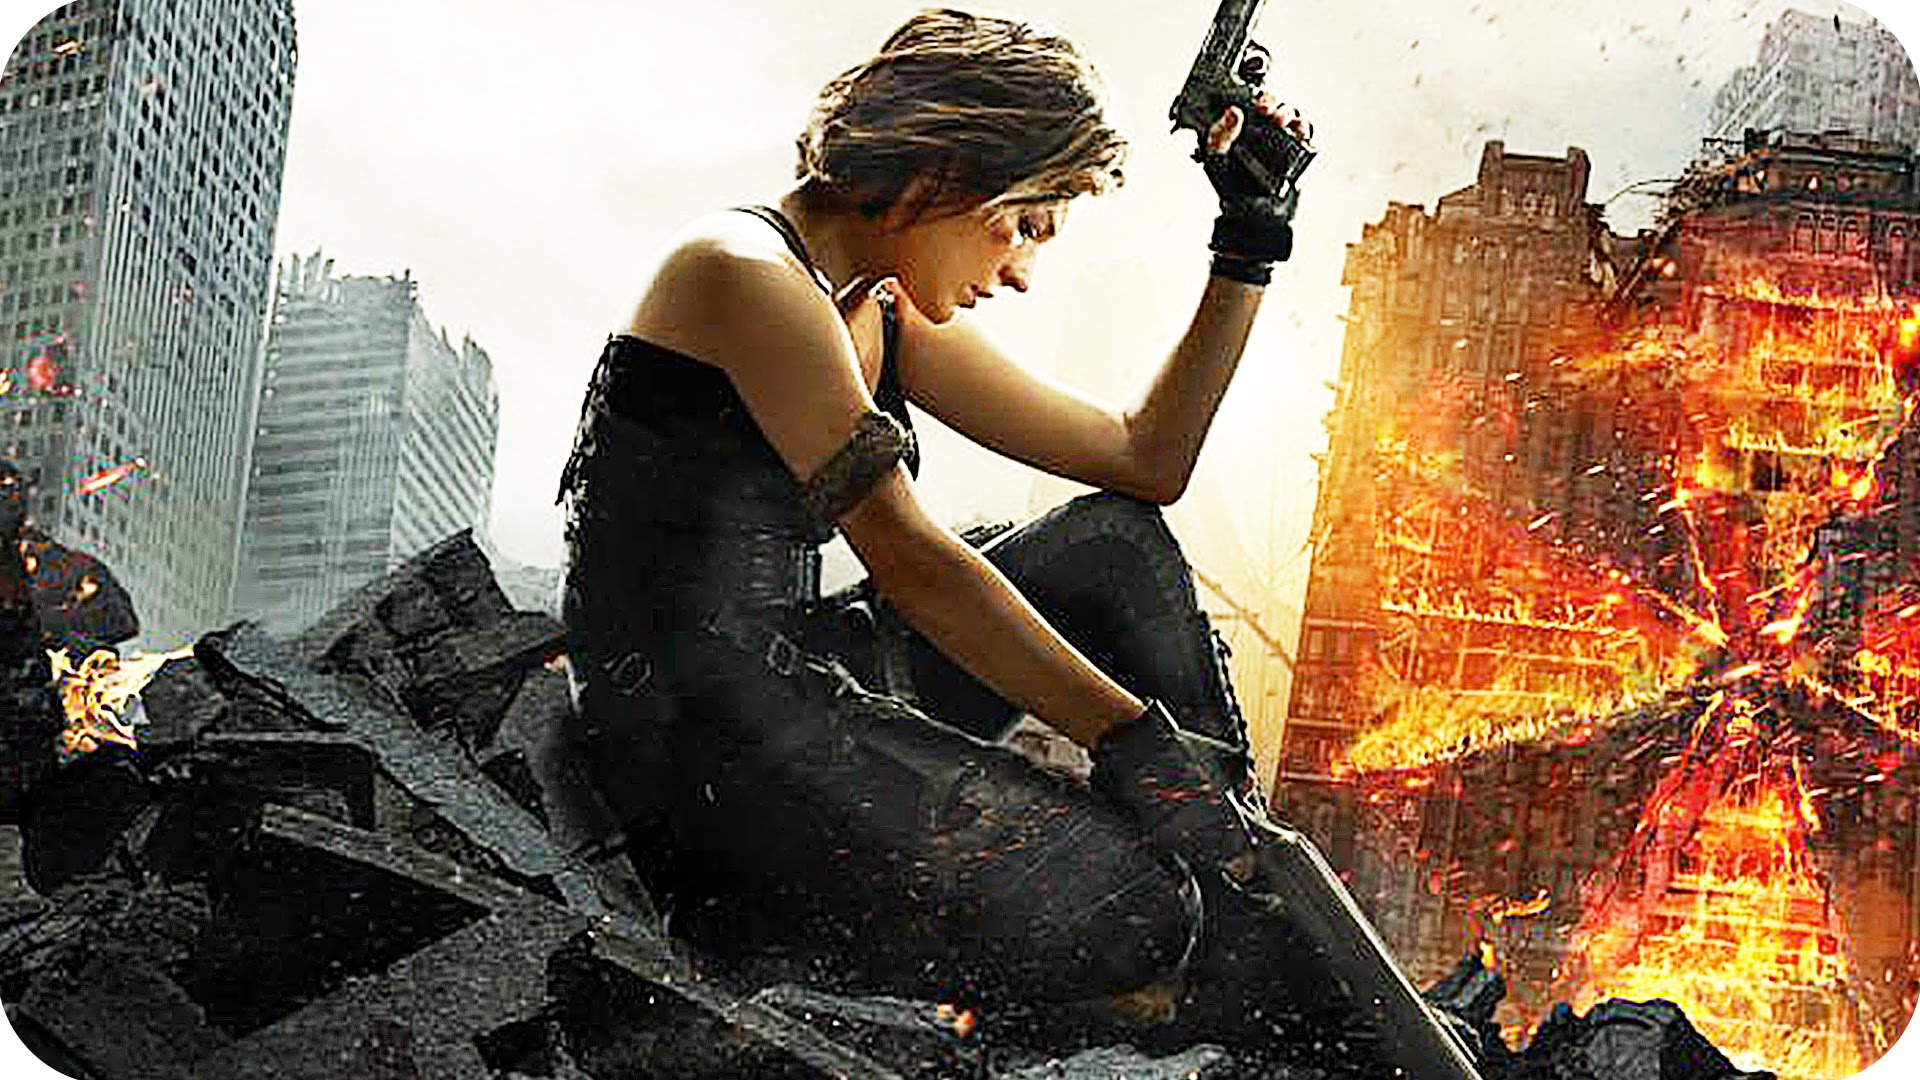 Ruby Rose Resident Evil The Final Chapter Wallpaper 11863: The Final Chapter: 5 Cose Da Sapere